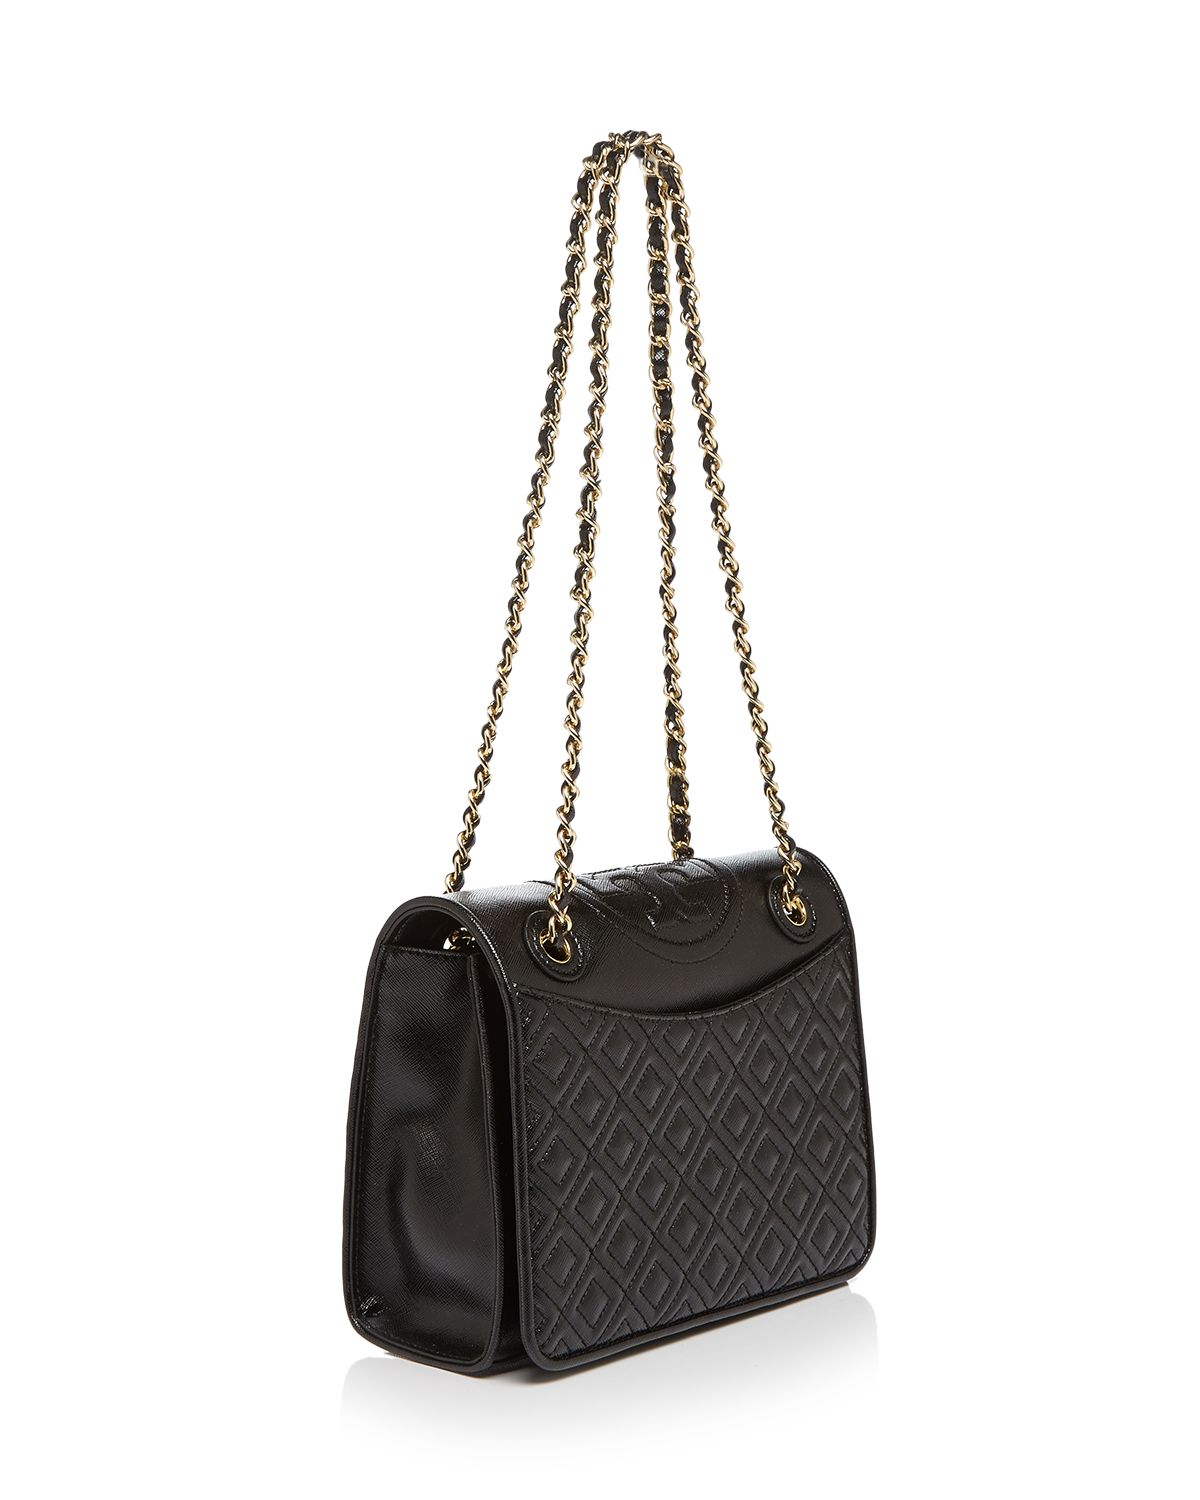 tory handbags Tory Burch Handbags. Totes, Satchels, Wallets and iPhone Cases. Whether you're packing your carry-all for a day at the beach or streamlining with a clever clutch that holds just the essentials, Tory Burch handbags make accessorizing easy.